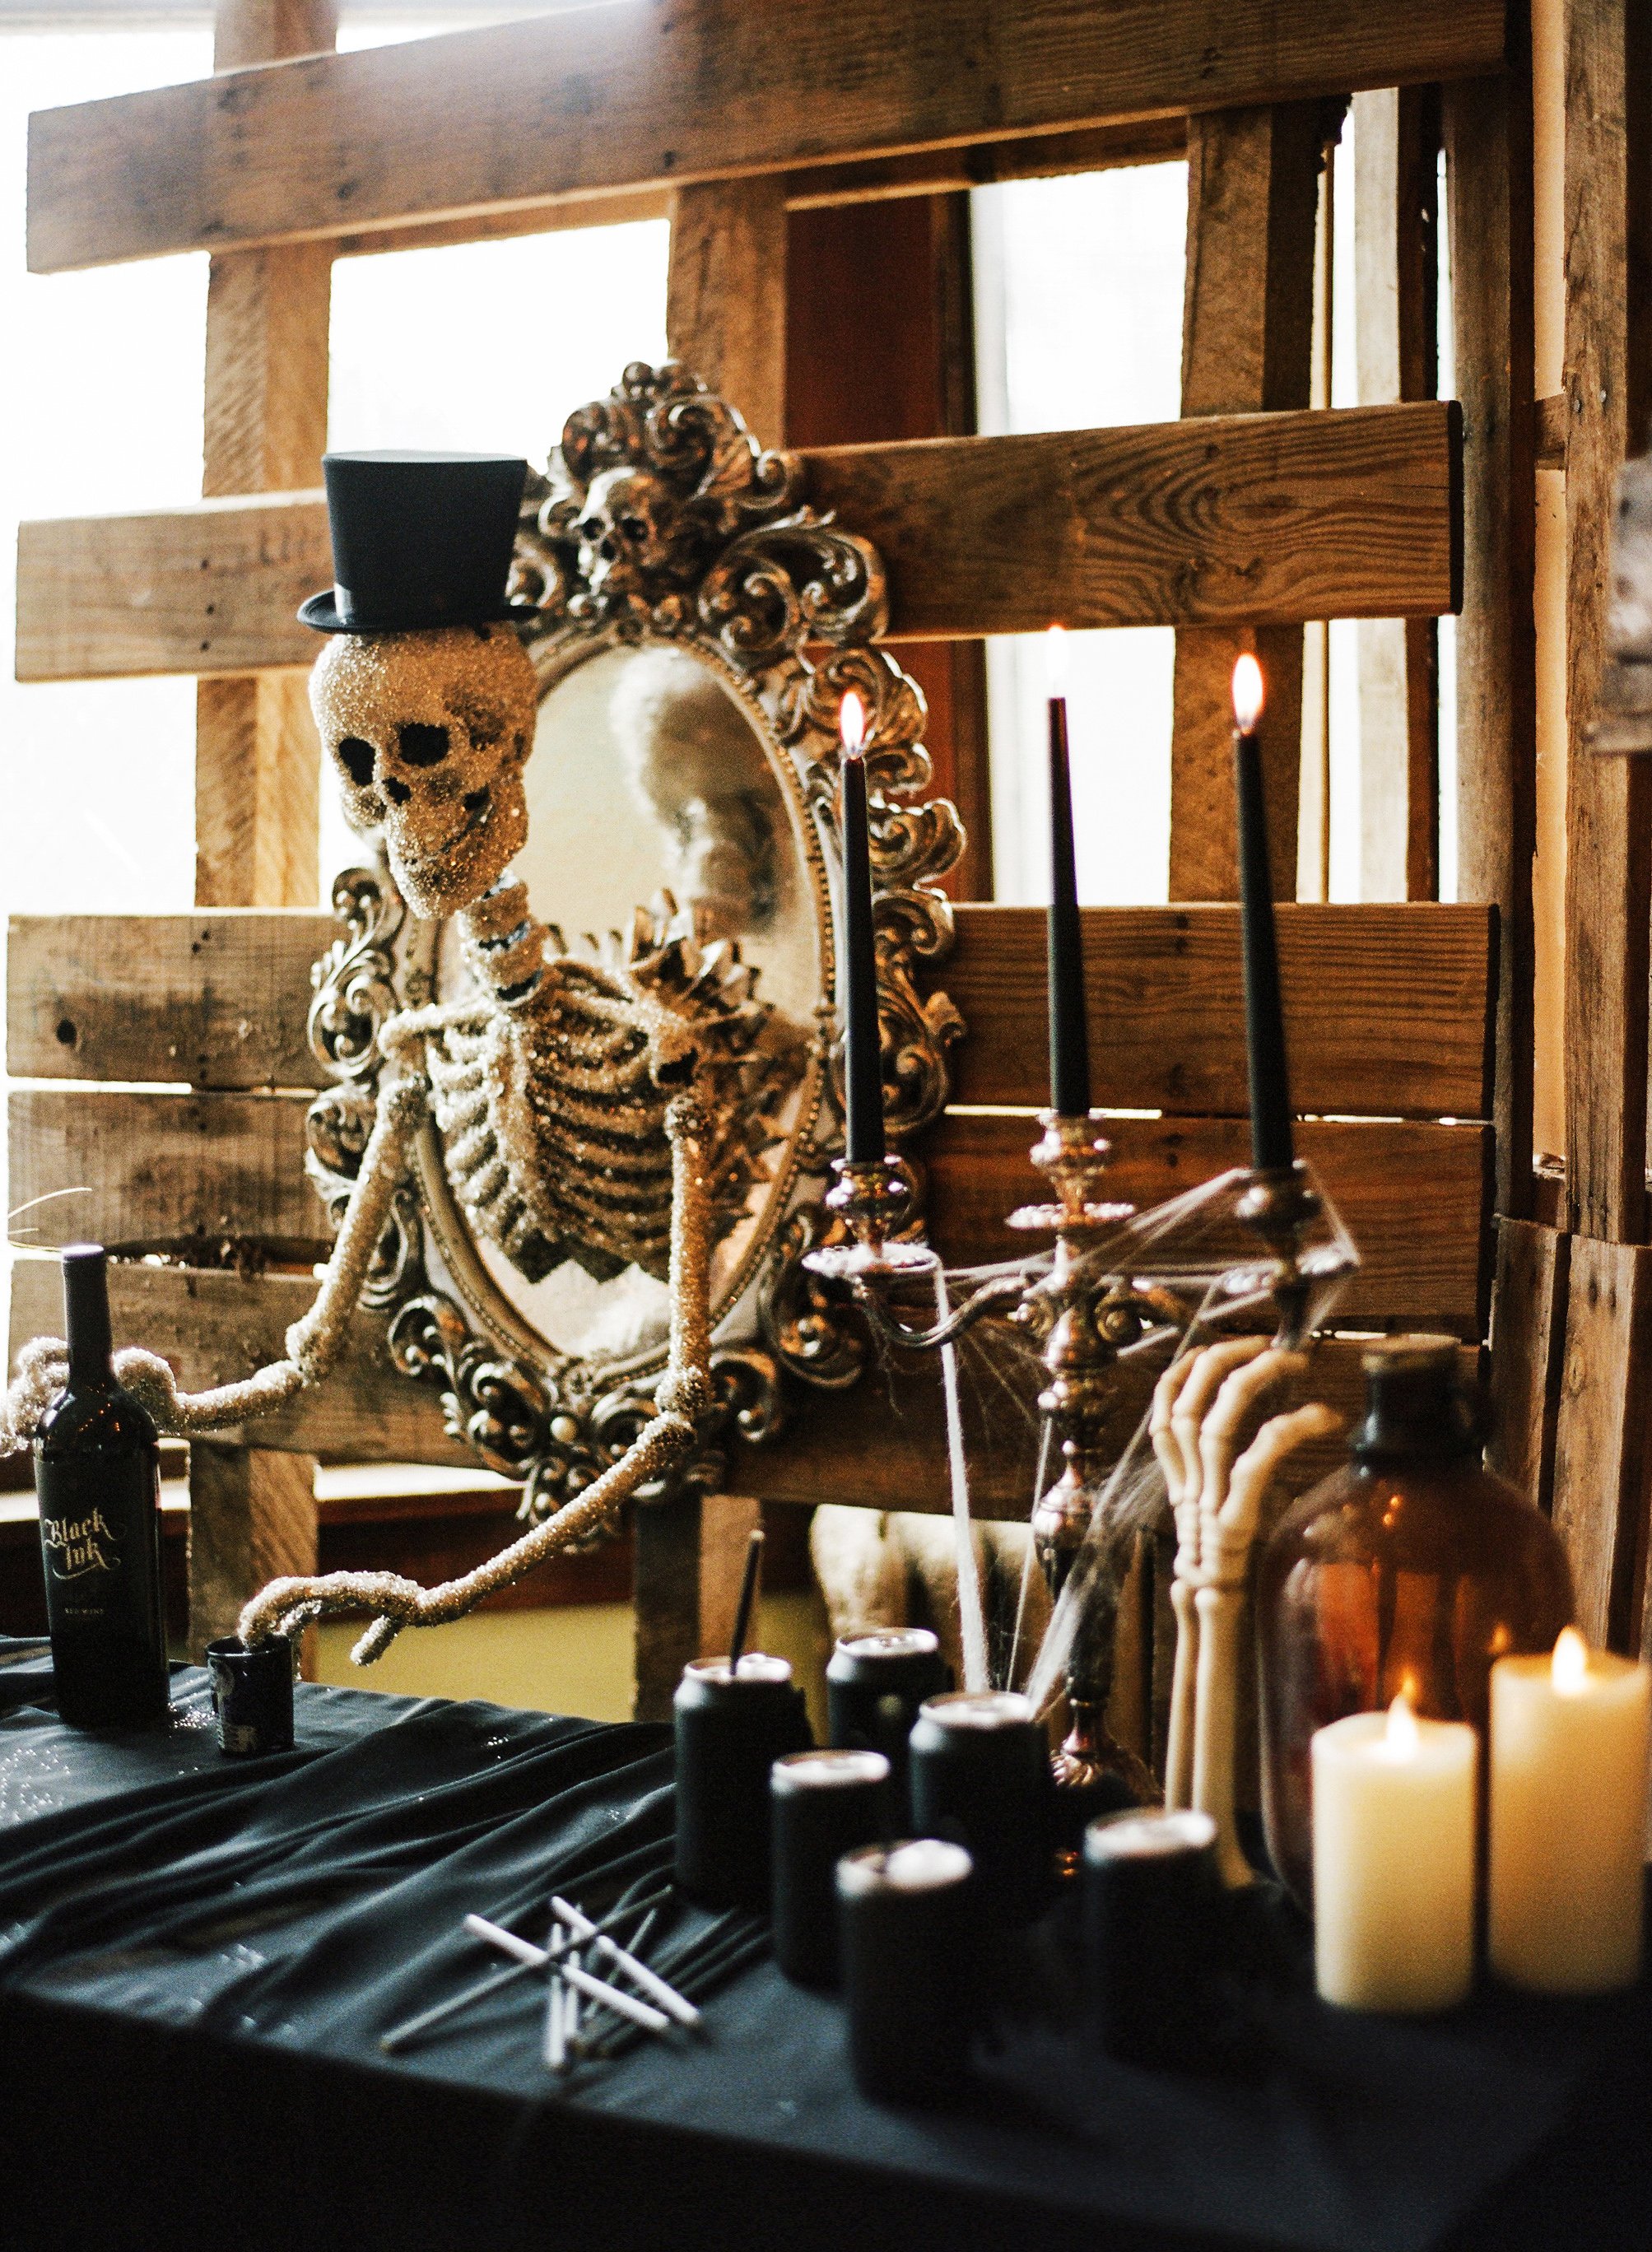 eli skeleton masquerade birthday party close up dead bartender drinks table decor